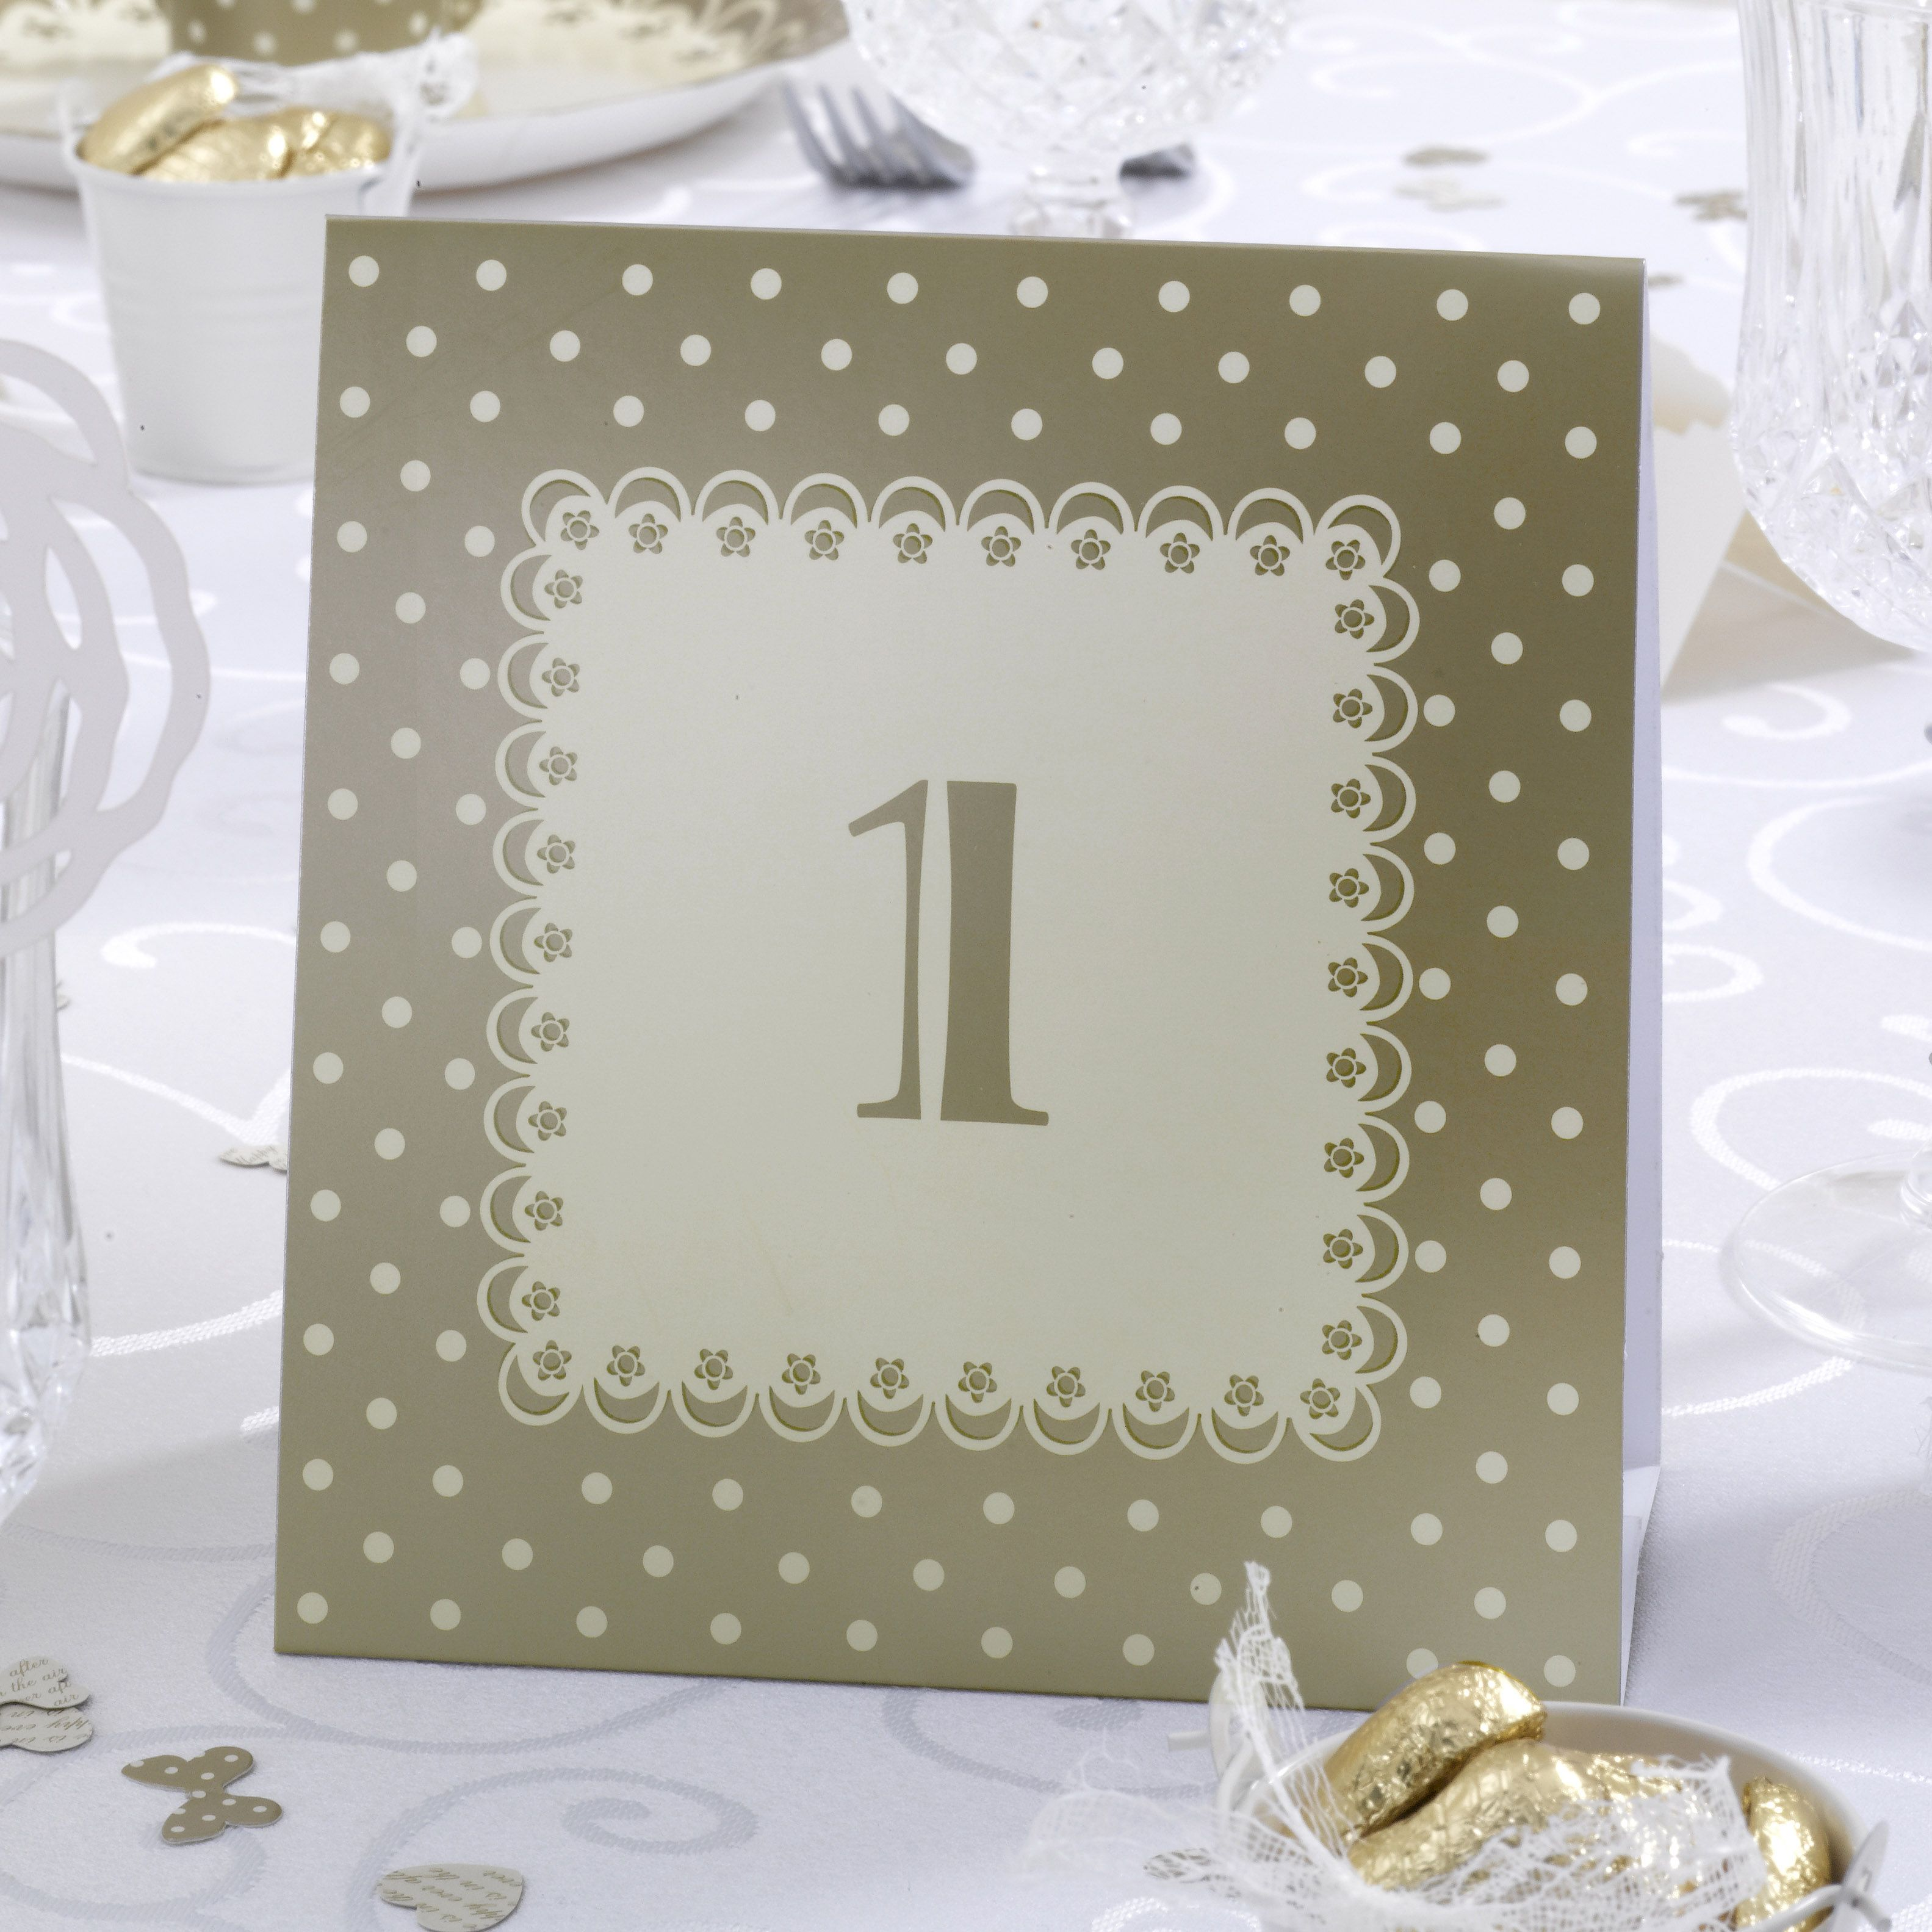 Wedding Table Decorations, Table Number - Chic Boutique | Wedding ...